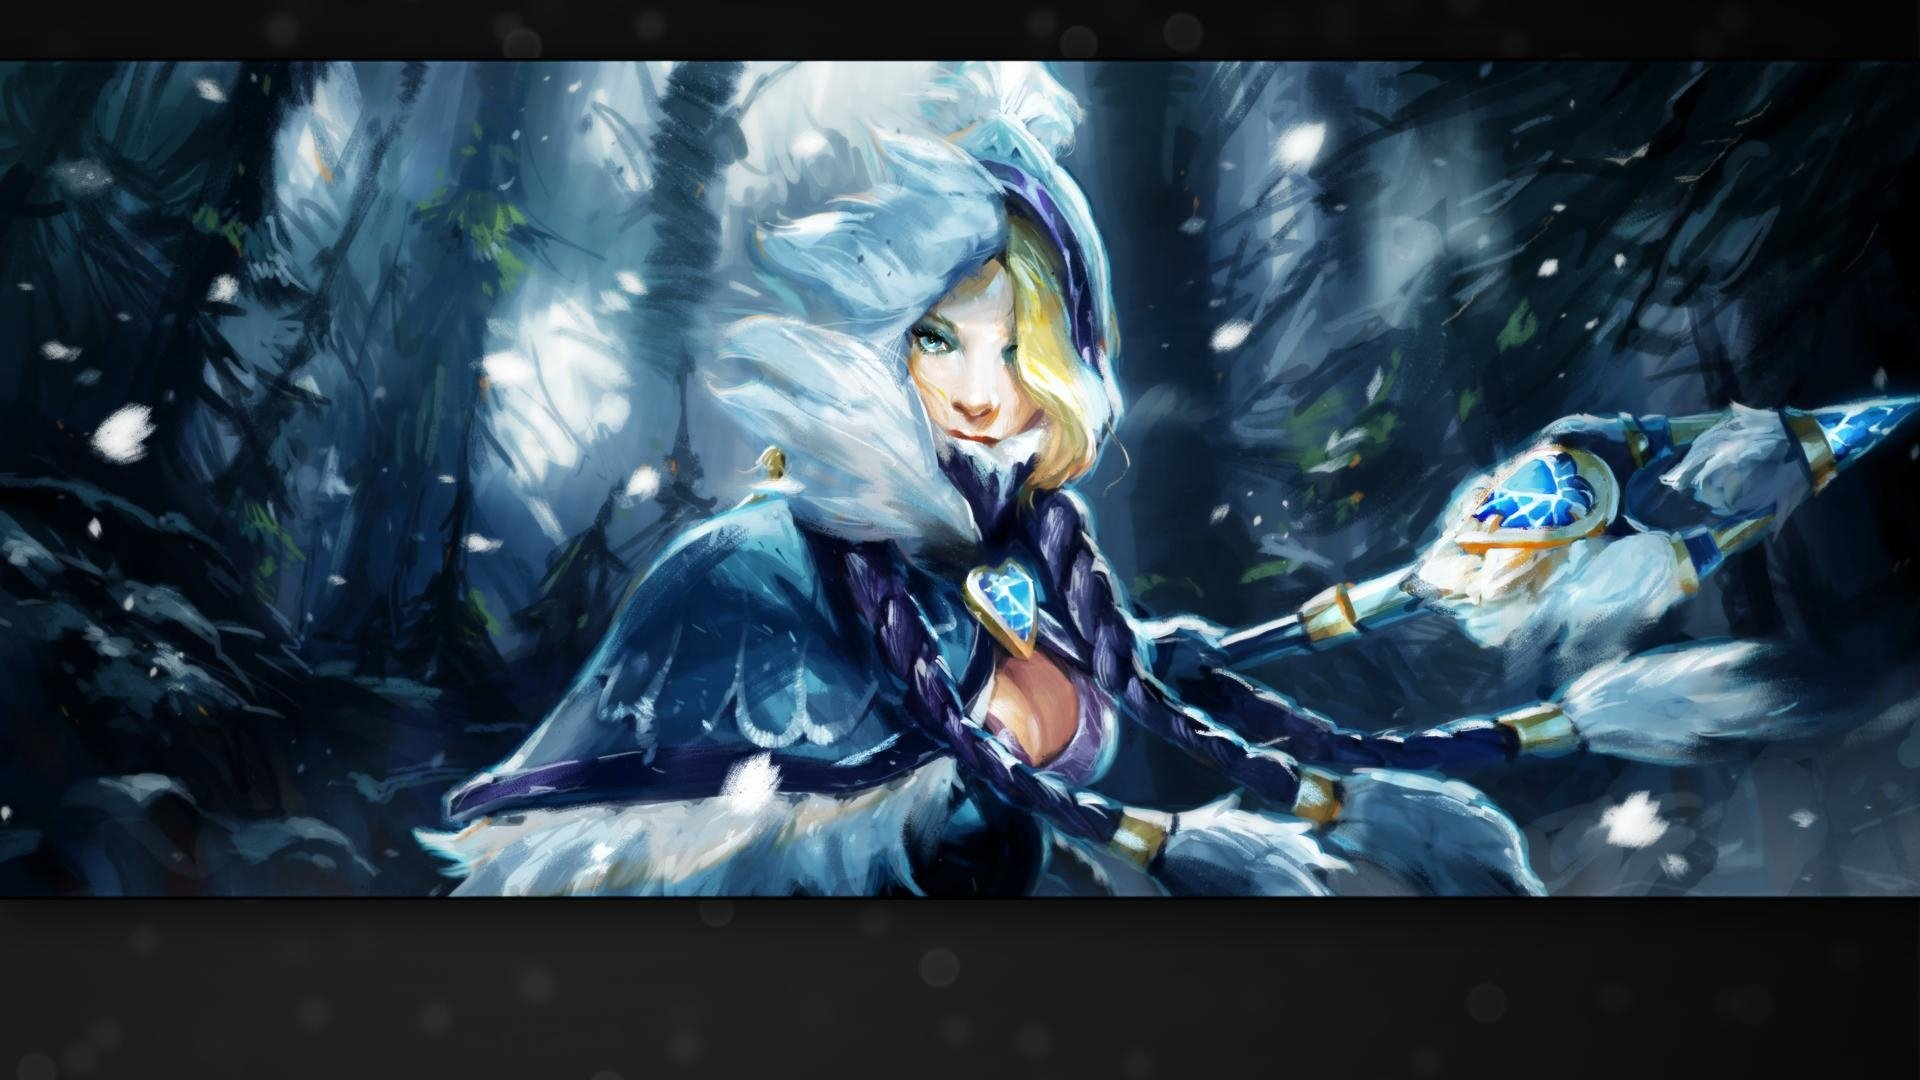 1546 Dota 2 Hd Wallpapers Background Images Wallpaper Abyss